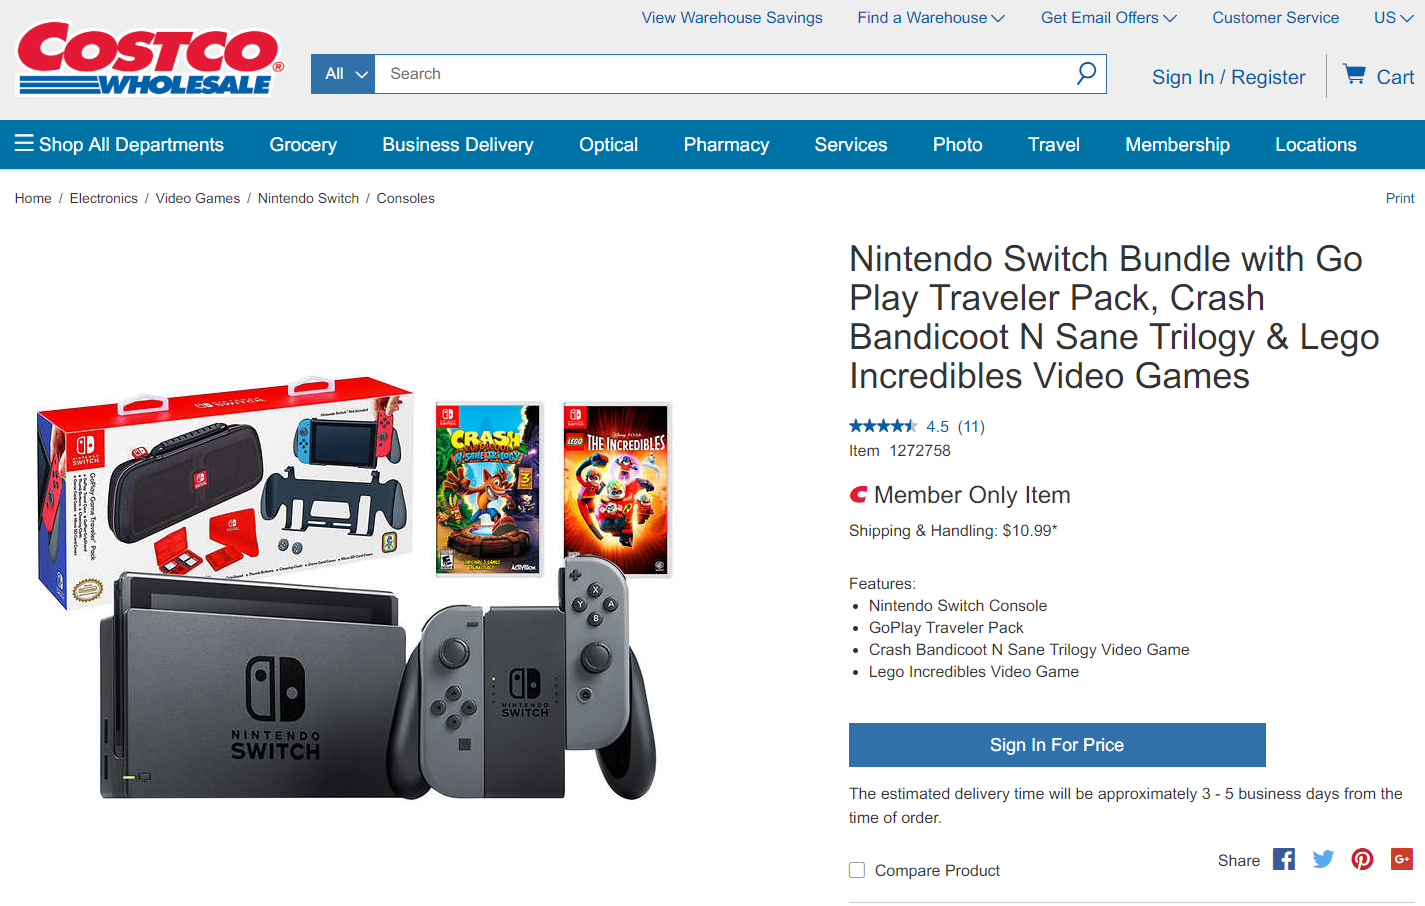 Costco Members Only Nintendo Switch Bundle Grey Joy Con W Crash Bandicoot N Sane Trilogy Lego Incredibles Go Play Traveler Pack Crashy News La nintendo switch, sortie en 2017, est un objet hybride, qui se transforme au gré des usages. crash bandicoot n sane trilogy lego